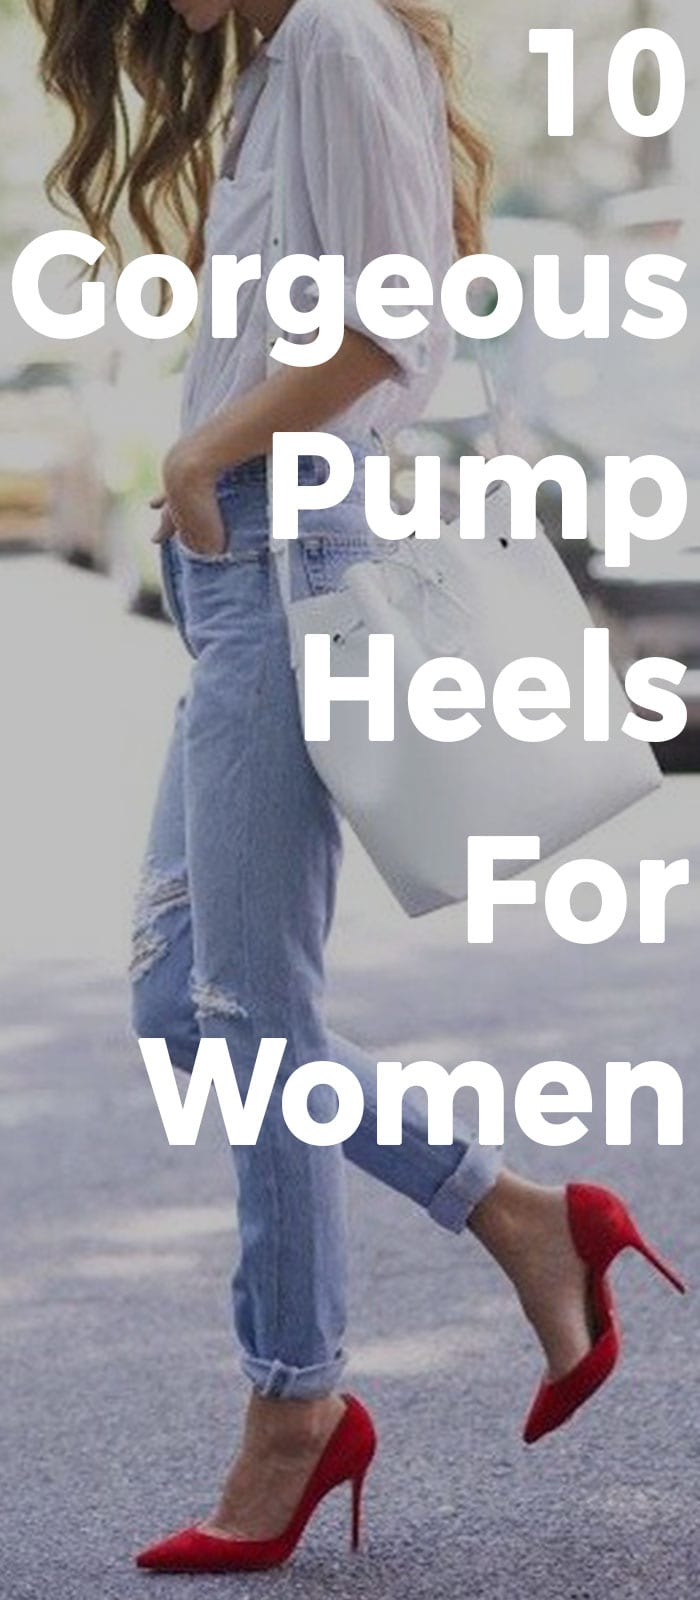 10 Gorgeous Pump Heels For Women!